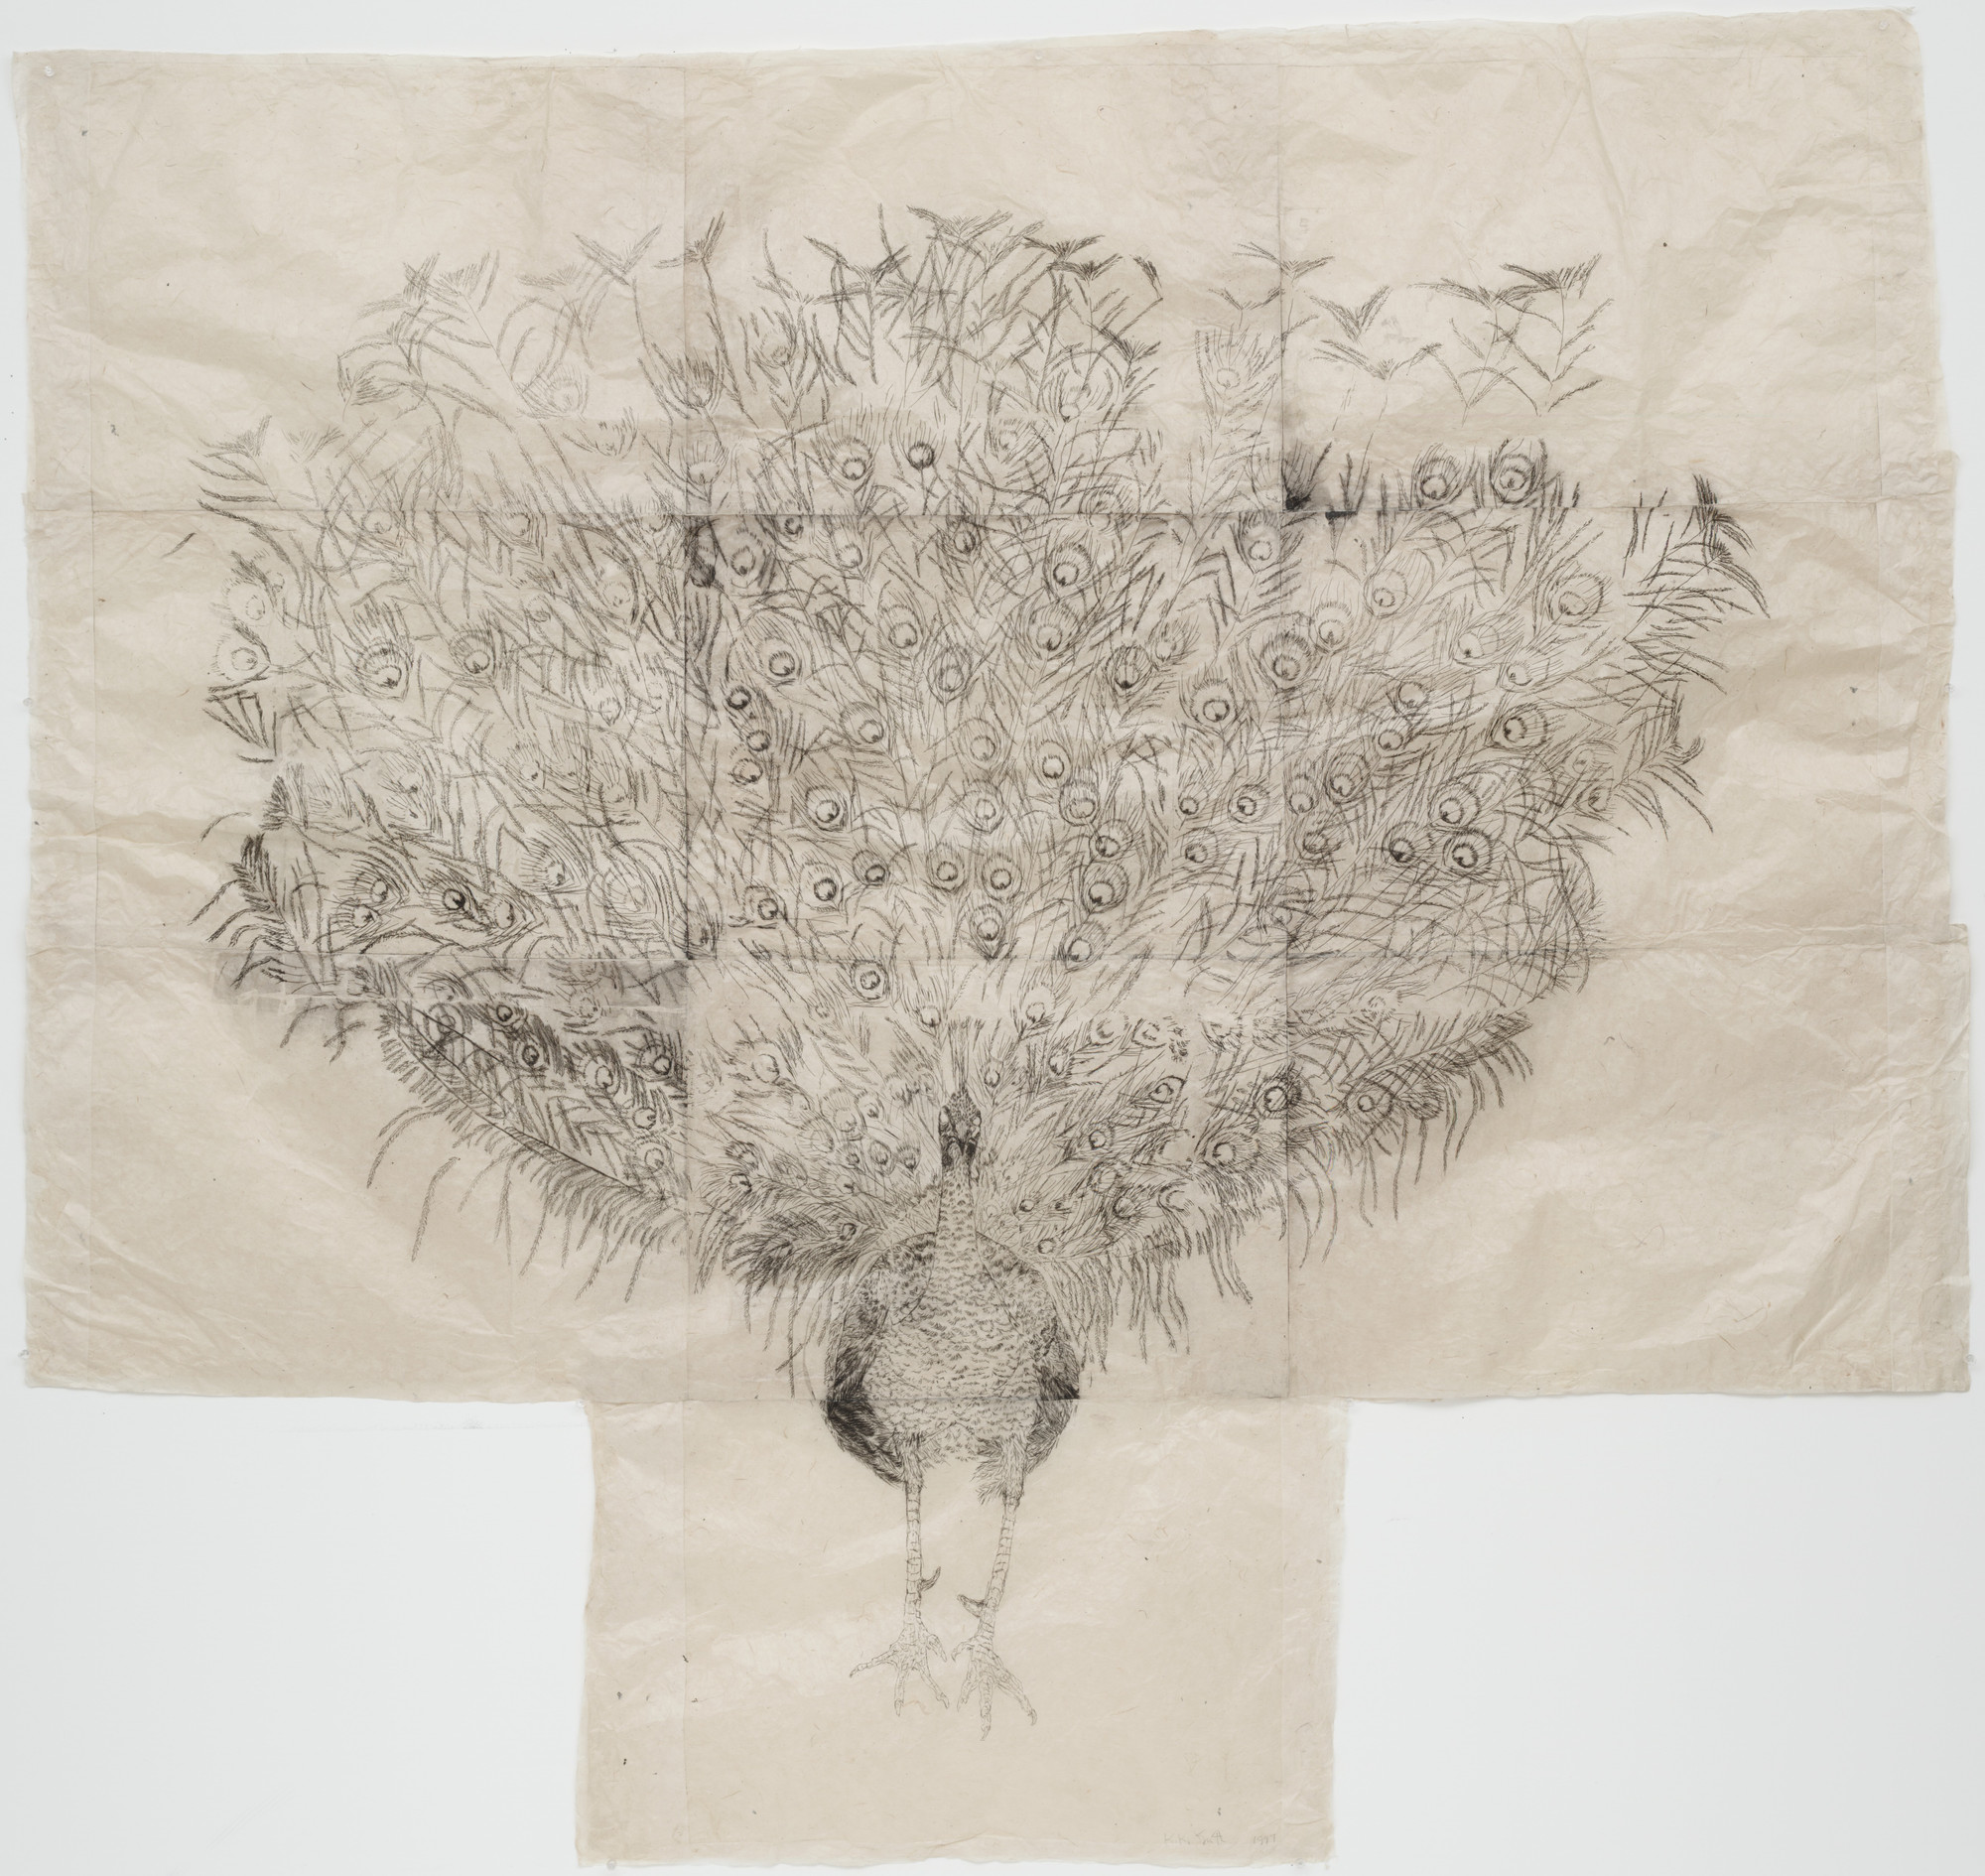 Kiki Smith. Peacock. 1997